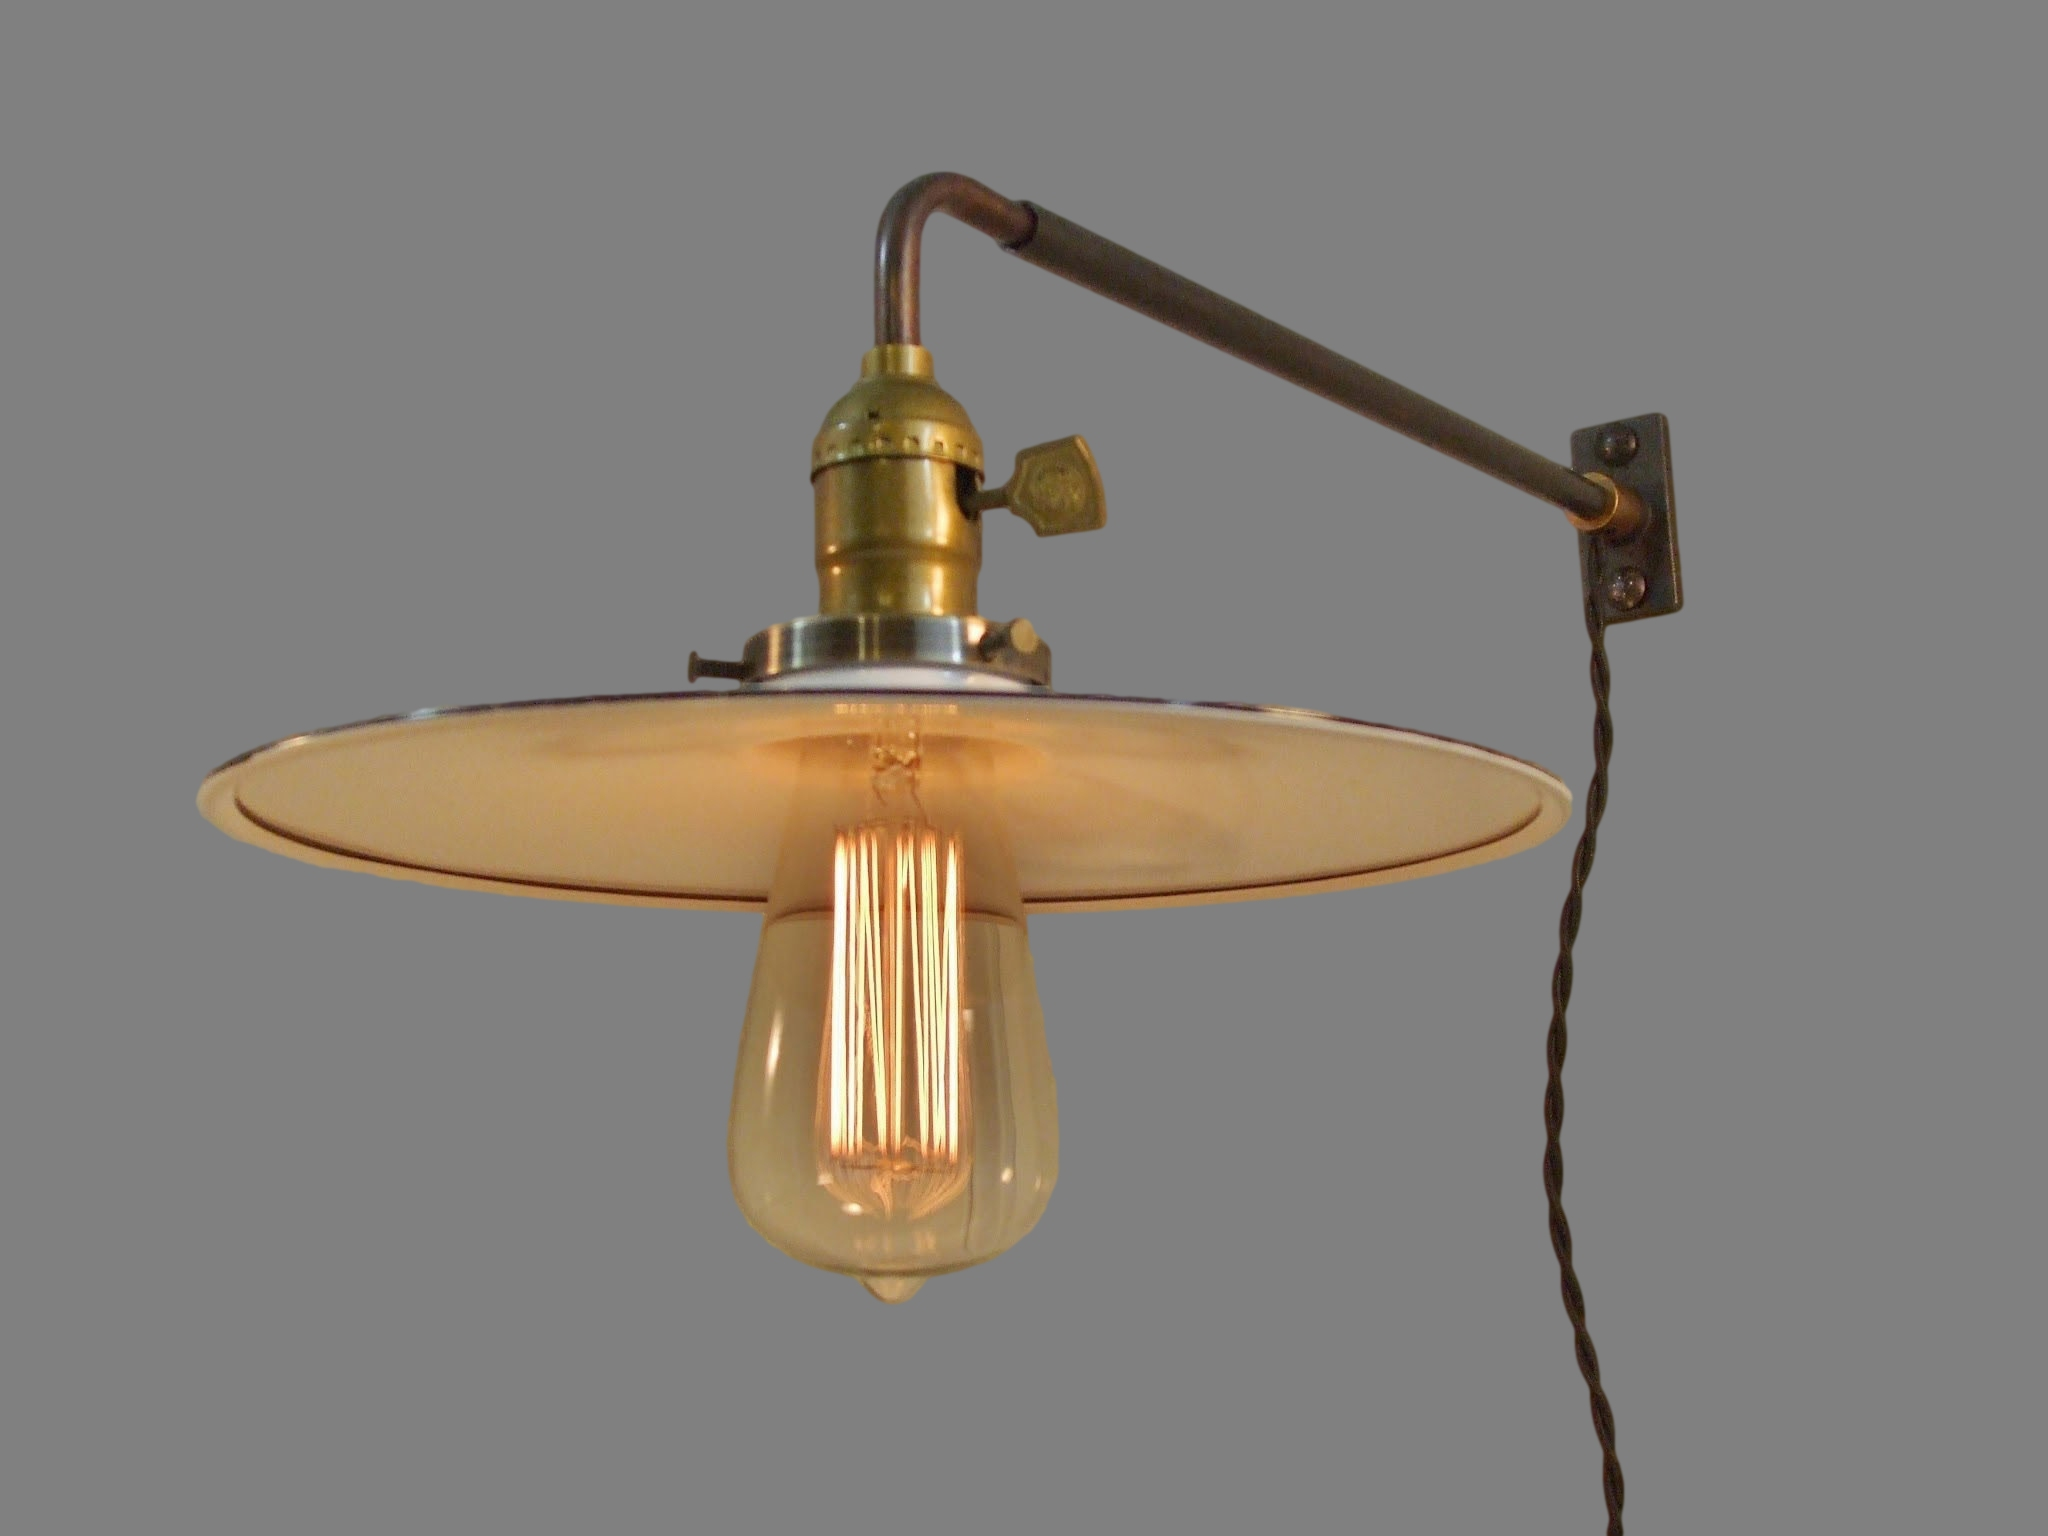 Vintage Industrial Style Wall Sconce with Flat Steel Shade ... on Vintage Wall Sconces id=47706